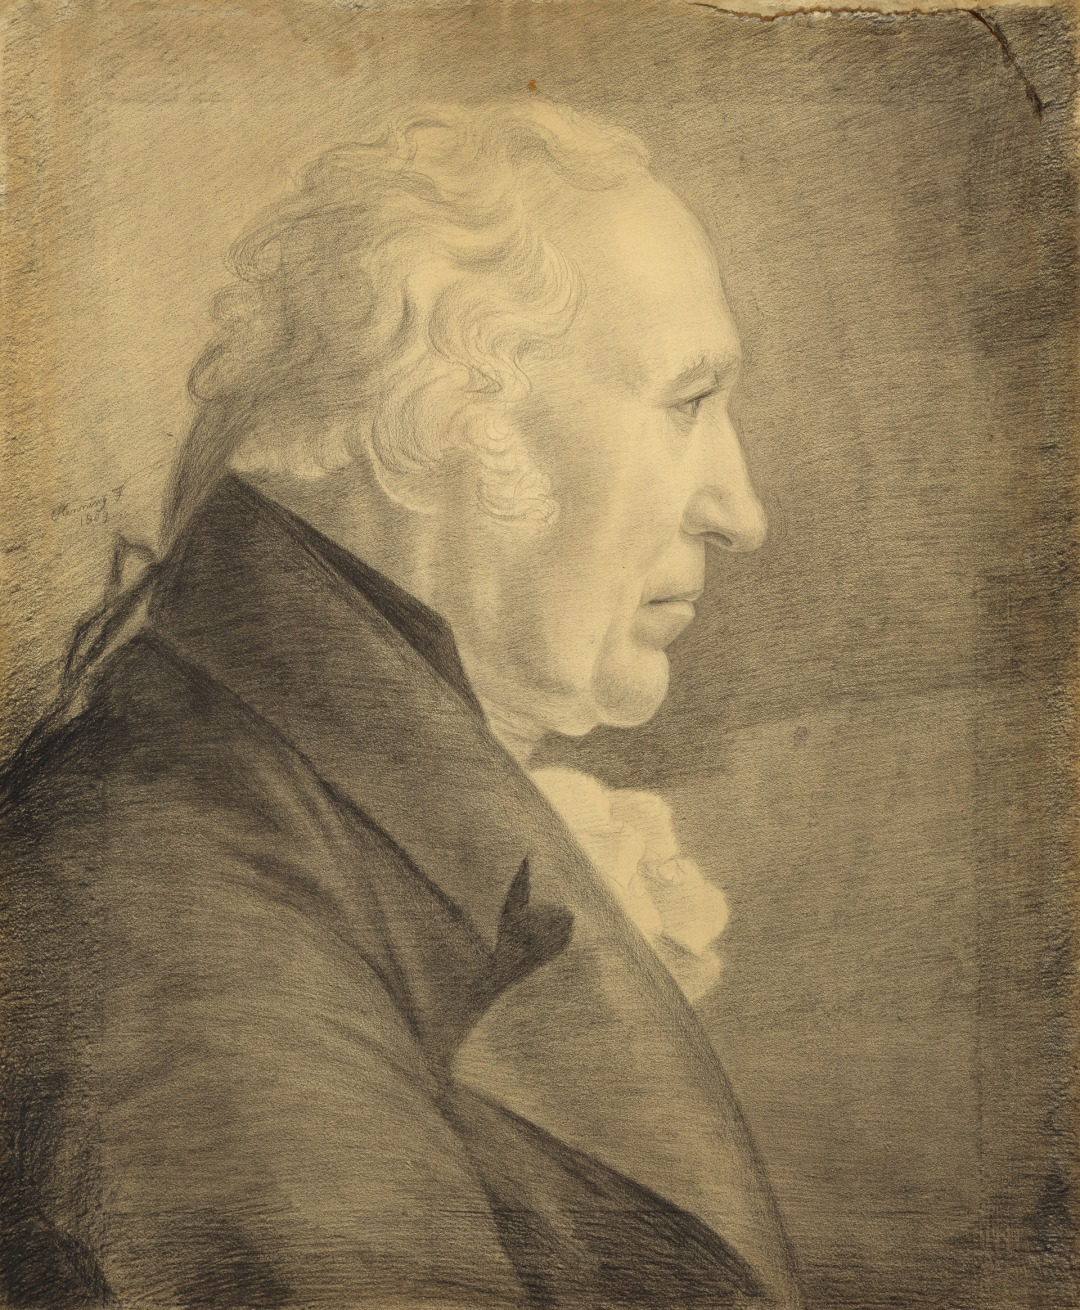 James Watt, 1736 - 1819. Engineer, inventor of the steam engine. Picture courtesy of the National Galleries of Scotland.